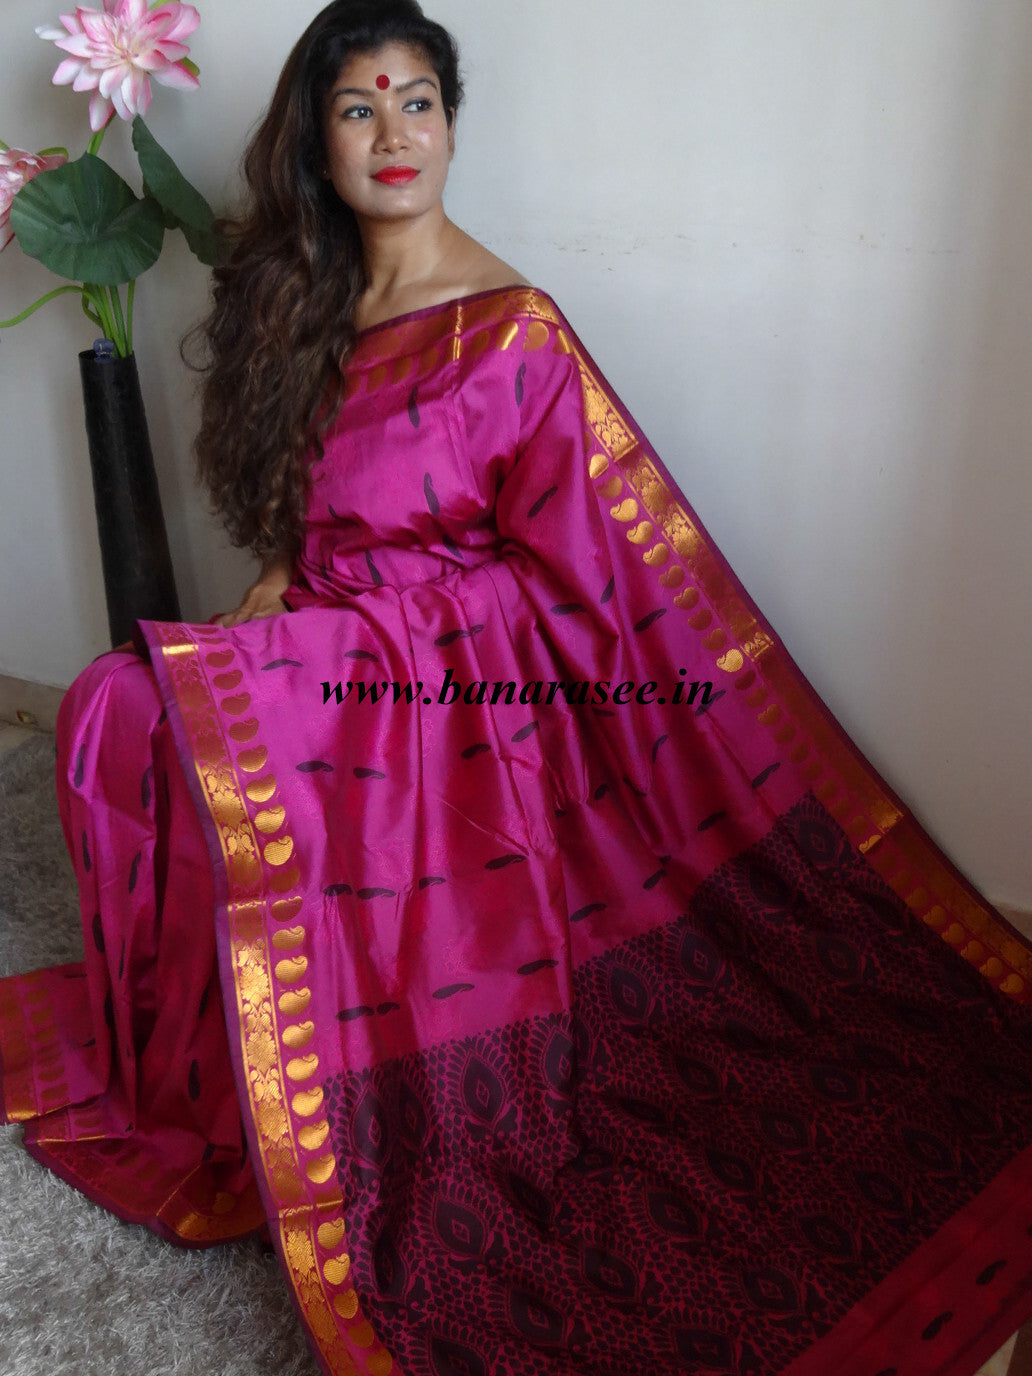 Banarasee Handwoven Art Silk Buti Saree With Black Resham weaving Design-Deep Pink